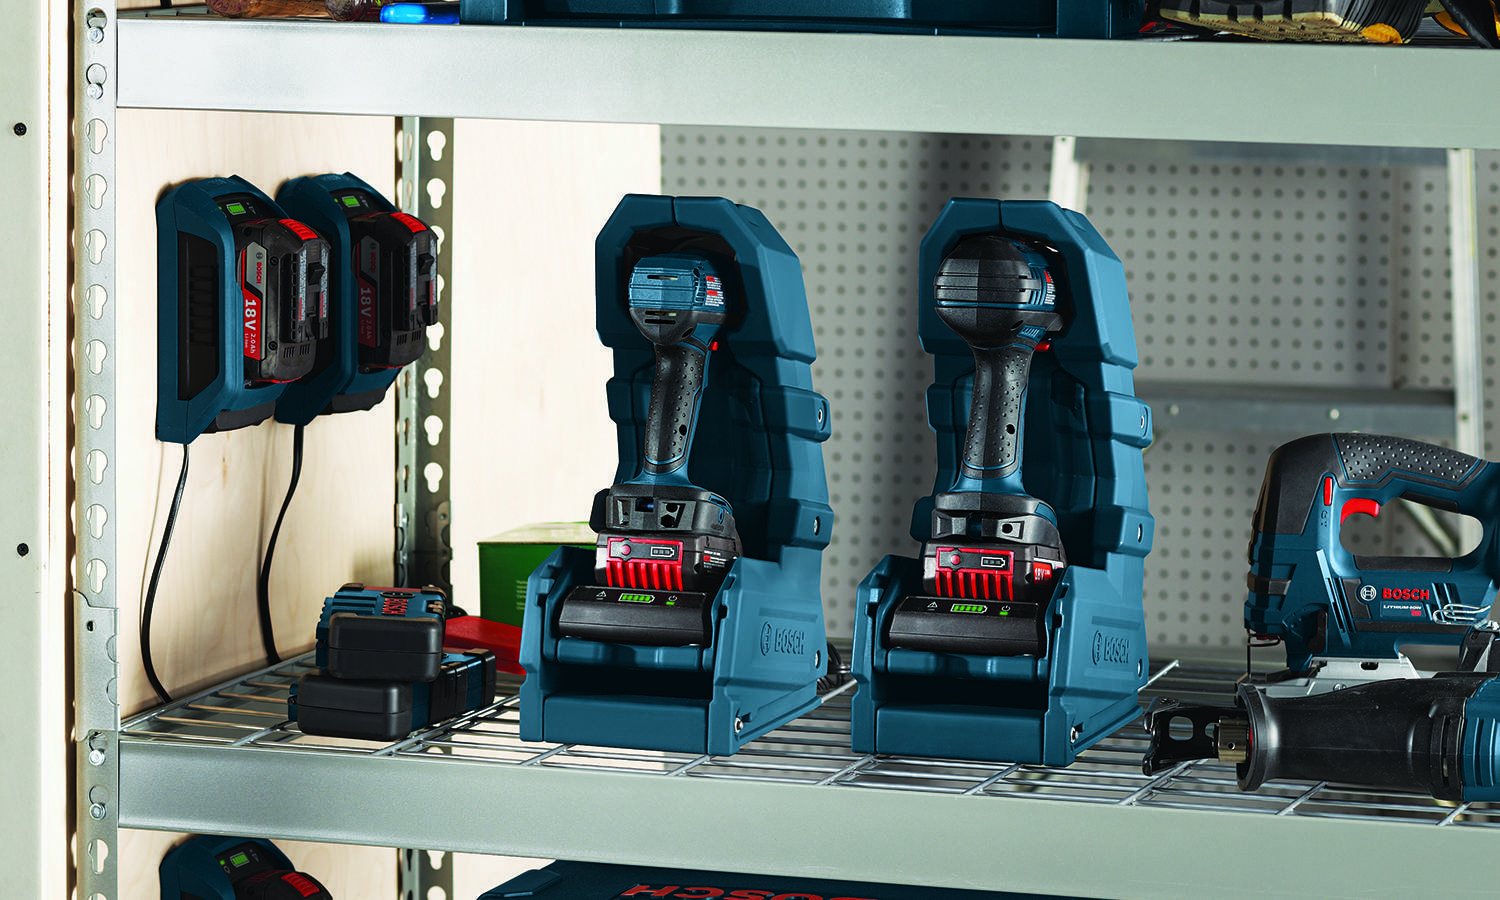 Bosch Debuts Wireless Charging System For Power Tools